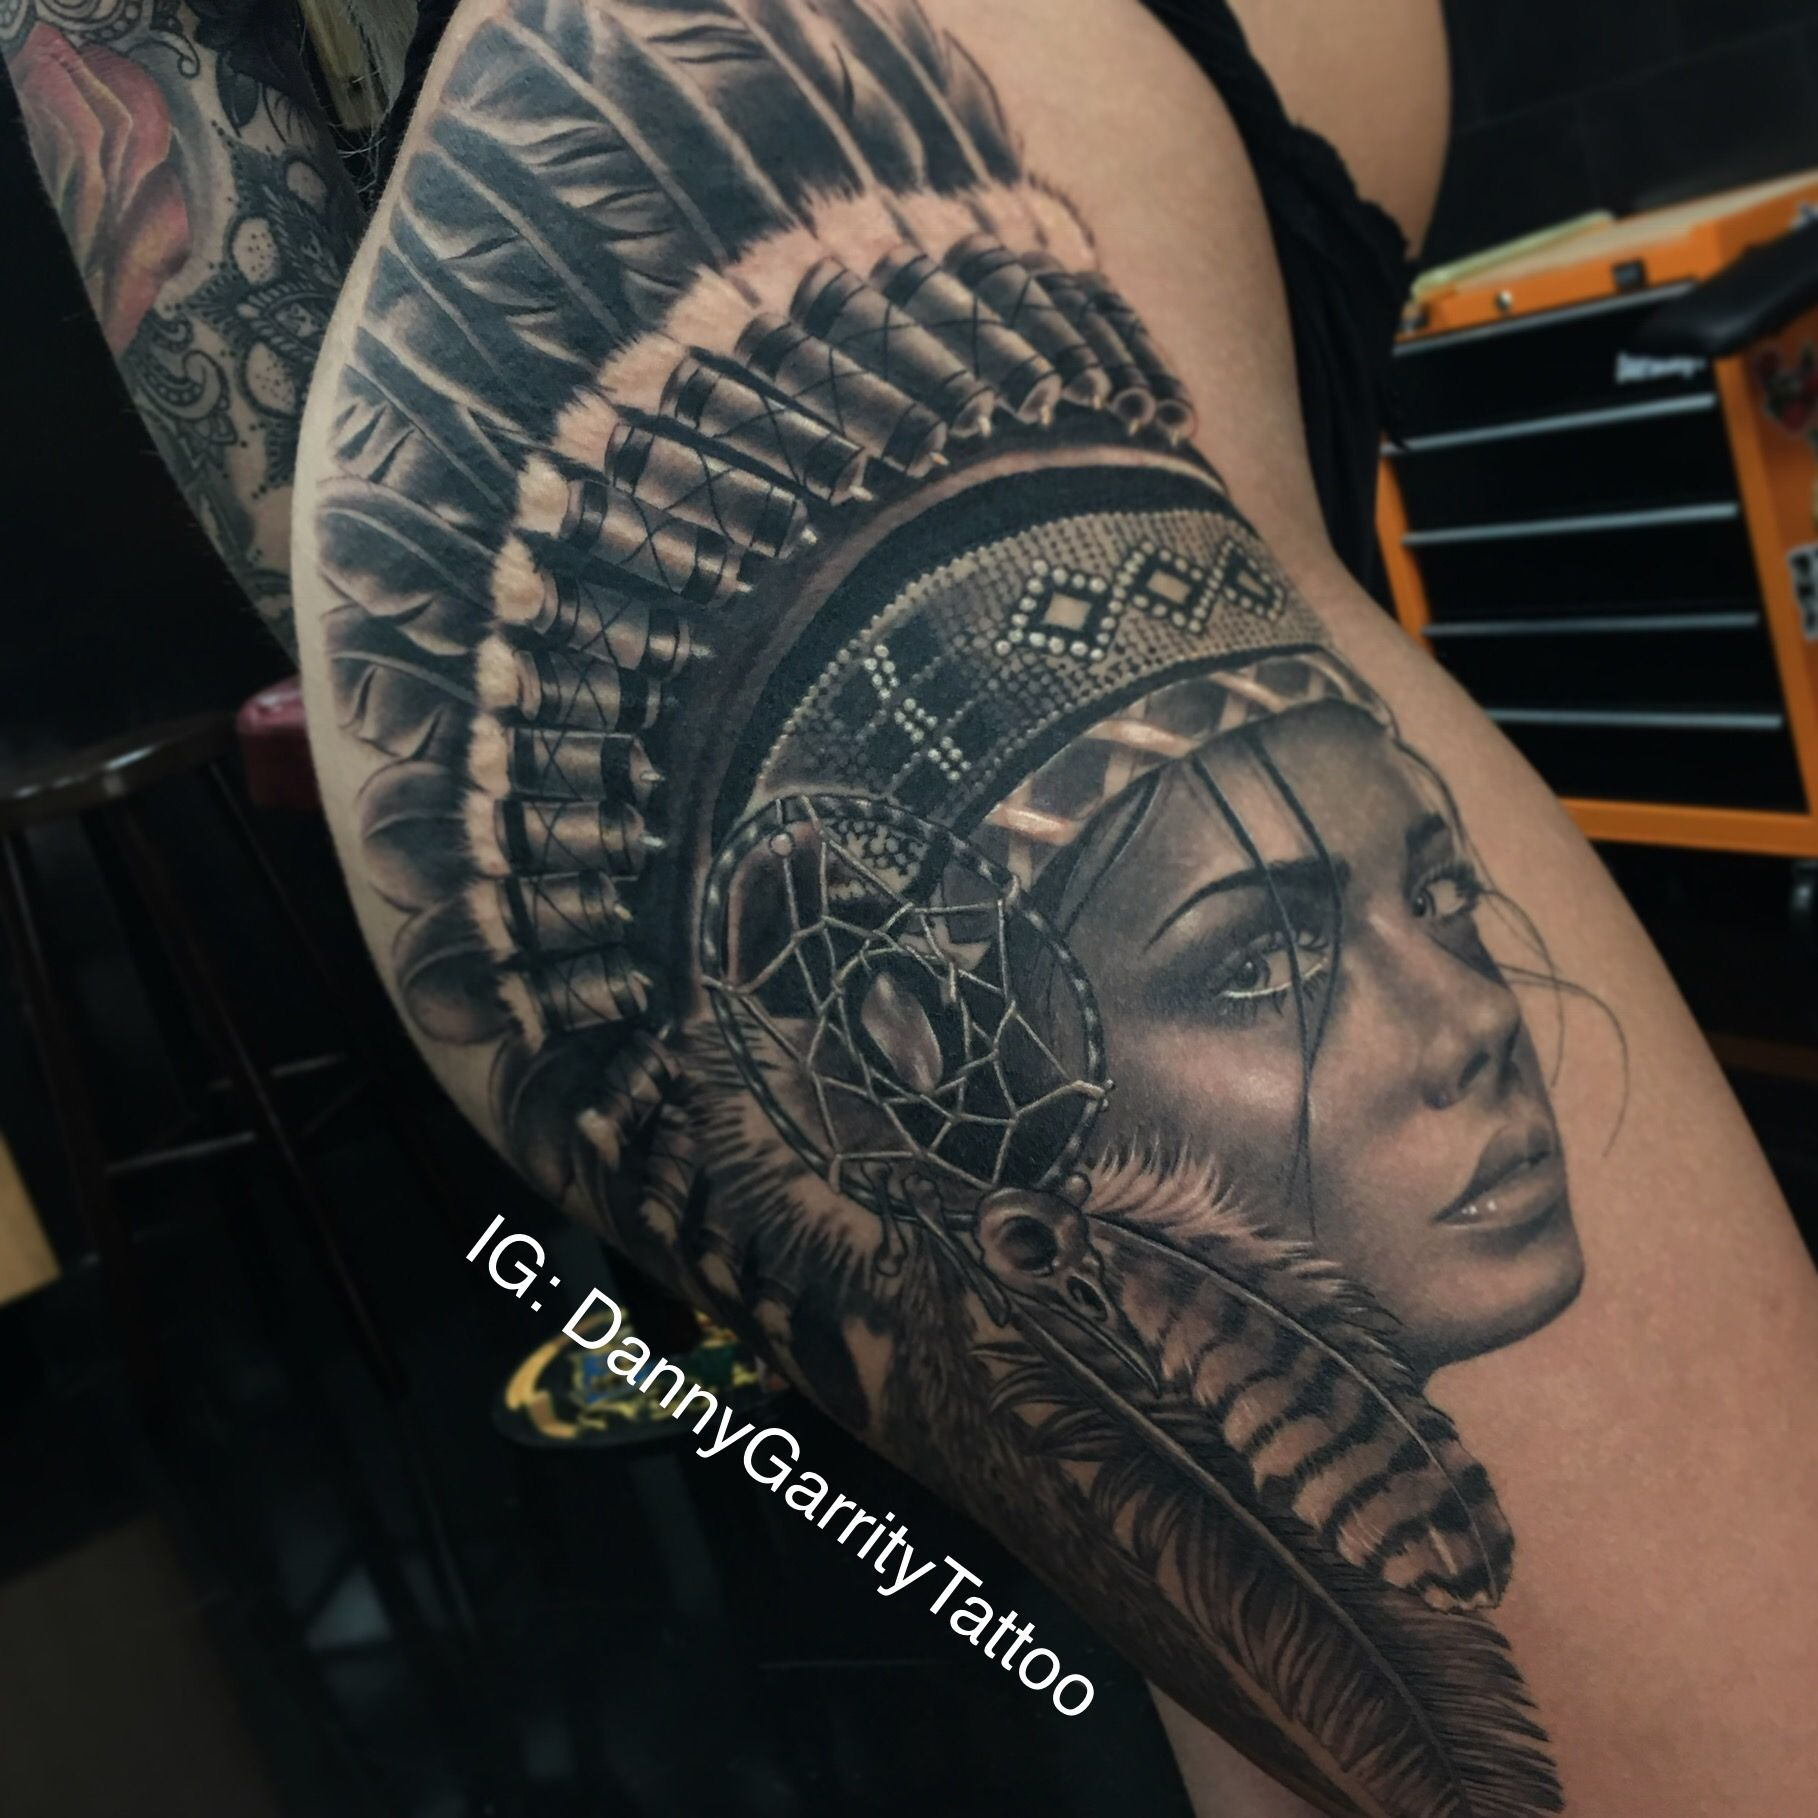 f38ca5a3b Black and grey realistic native girl thigh piece tattoo with Indian  headdress and feathers